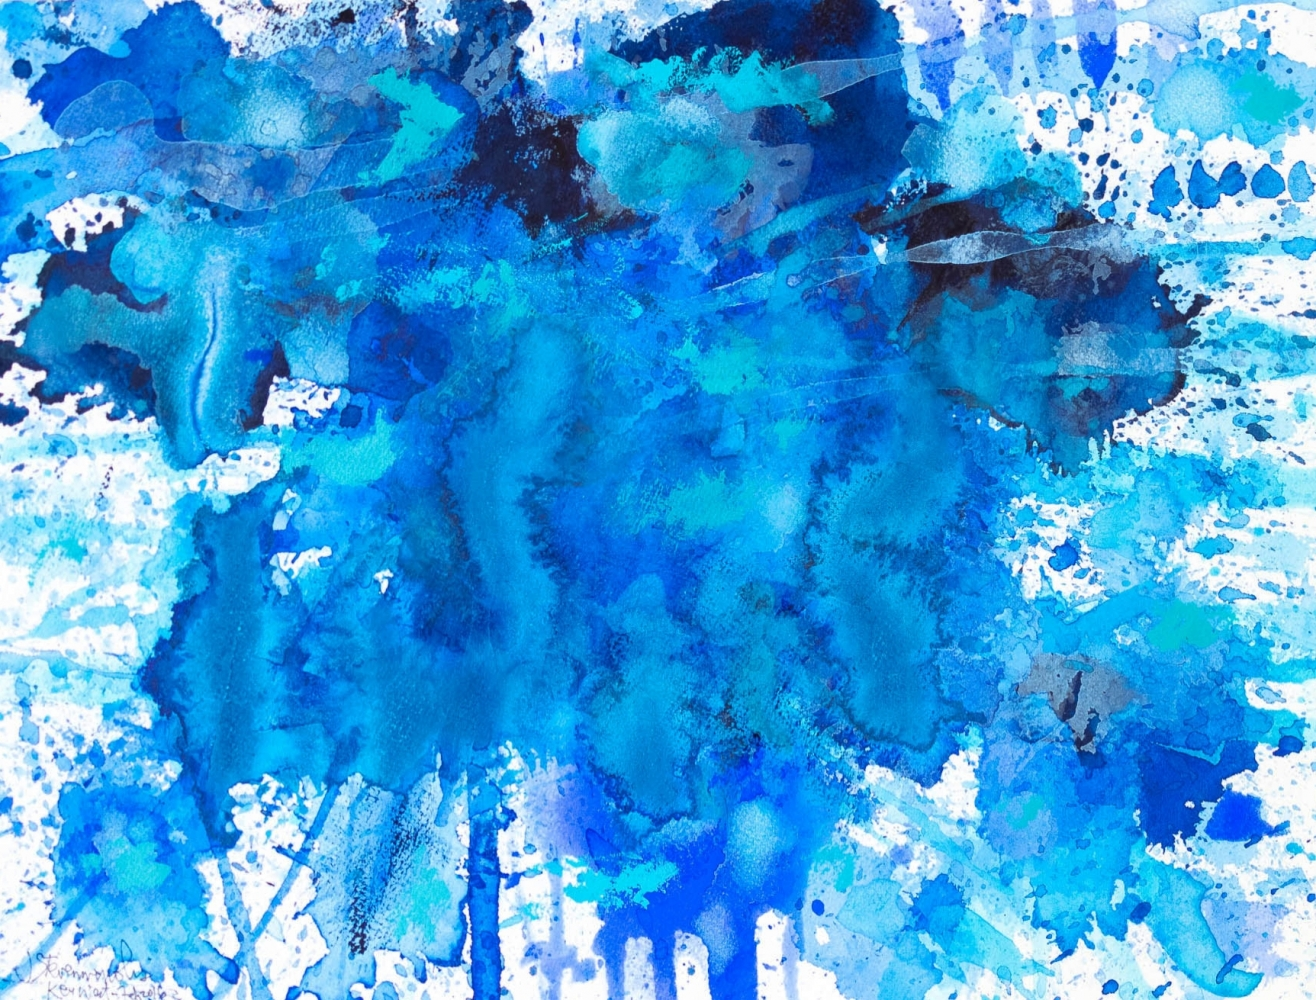 J. Steven Manolis, Splash-Key West (12.16.03), 2016, Watercolor, Acrylic and Gouache on paper, 12 x 16 inches, blue abstract expressionism art